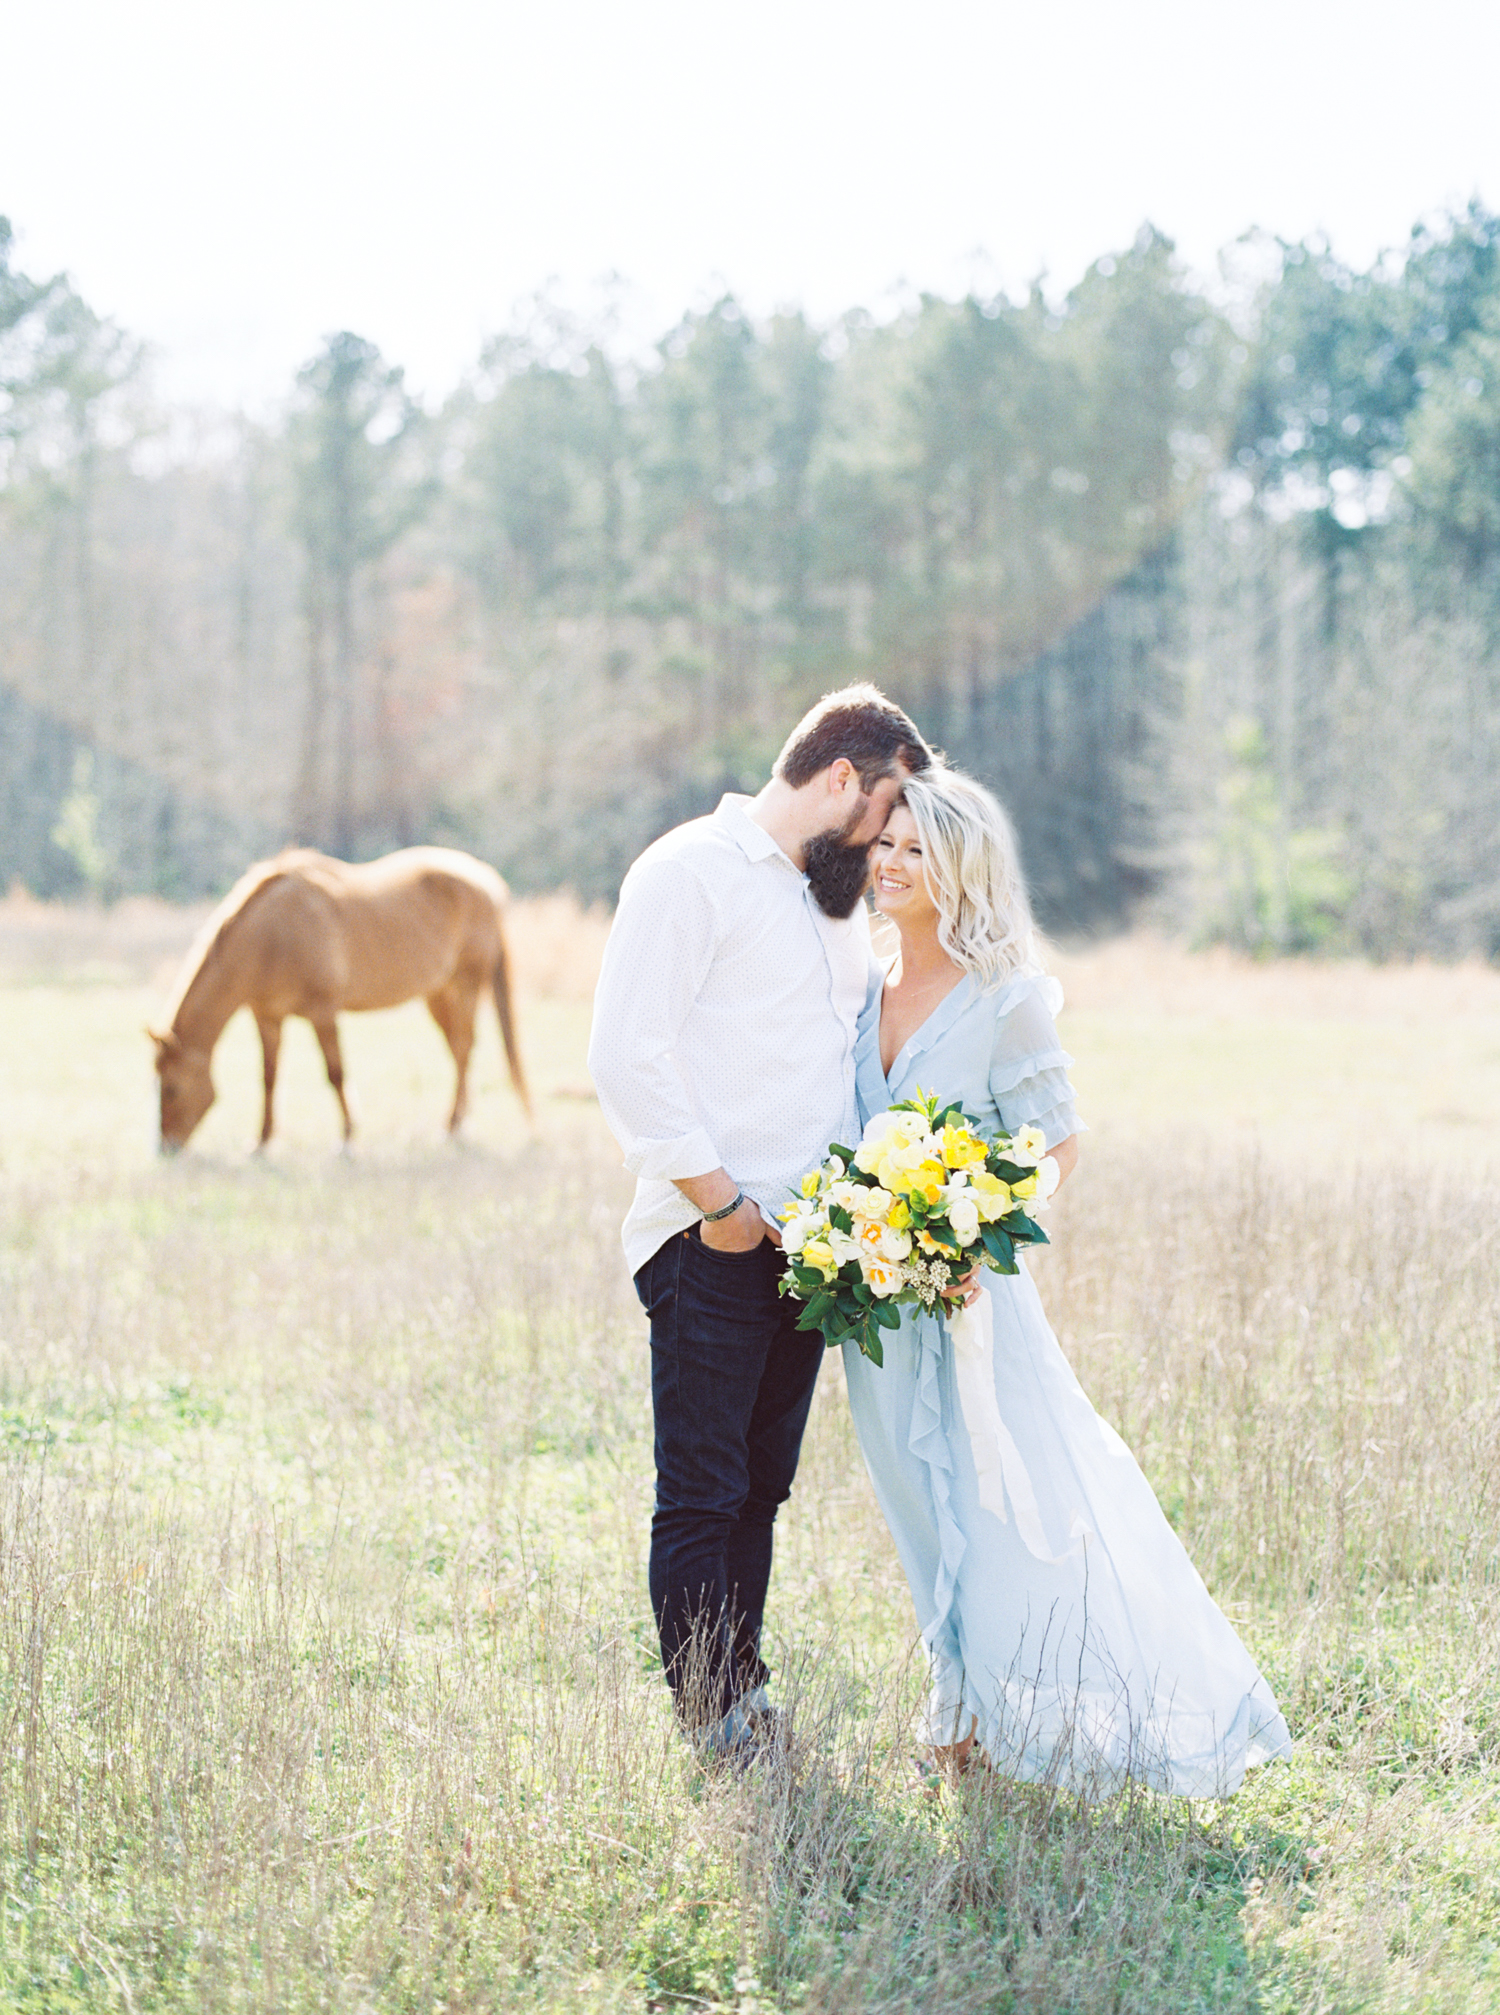 hannah forsberg atlanta wedding photographer whitney spence anniversary session with miniature donkeys and horse-1.jpg